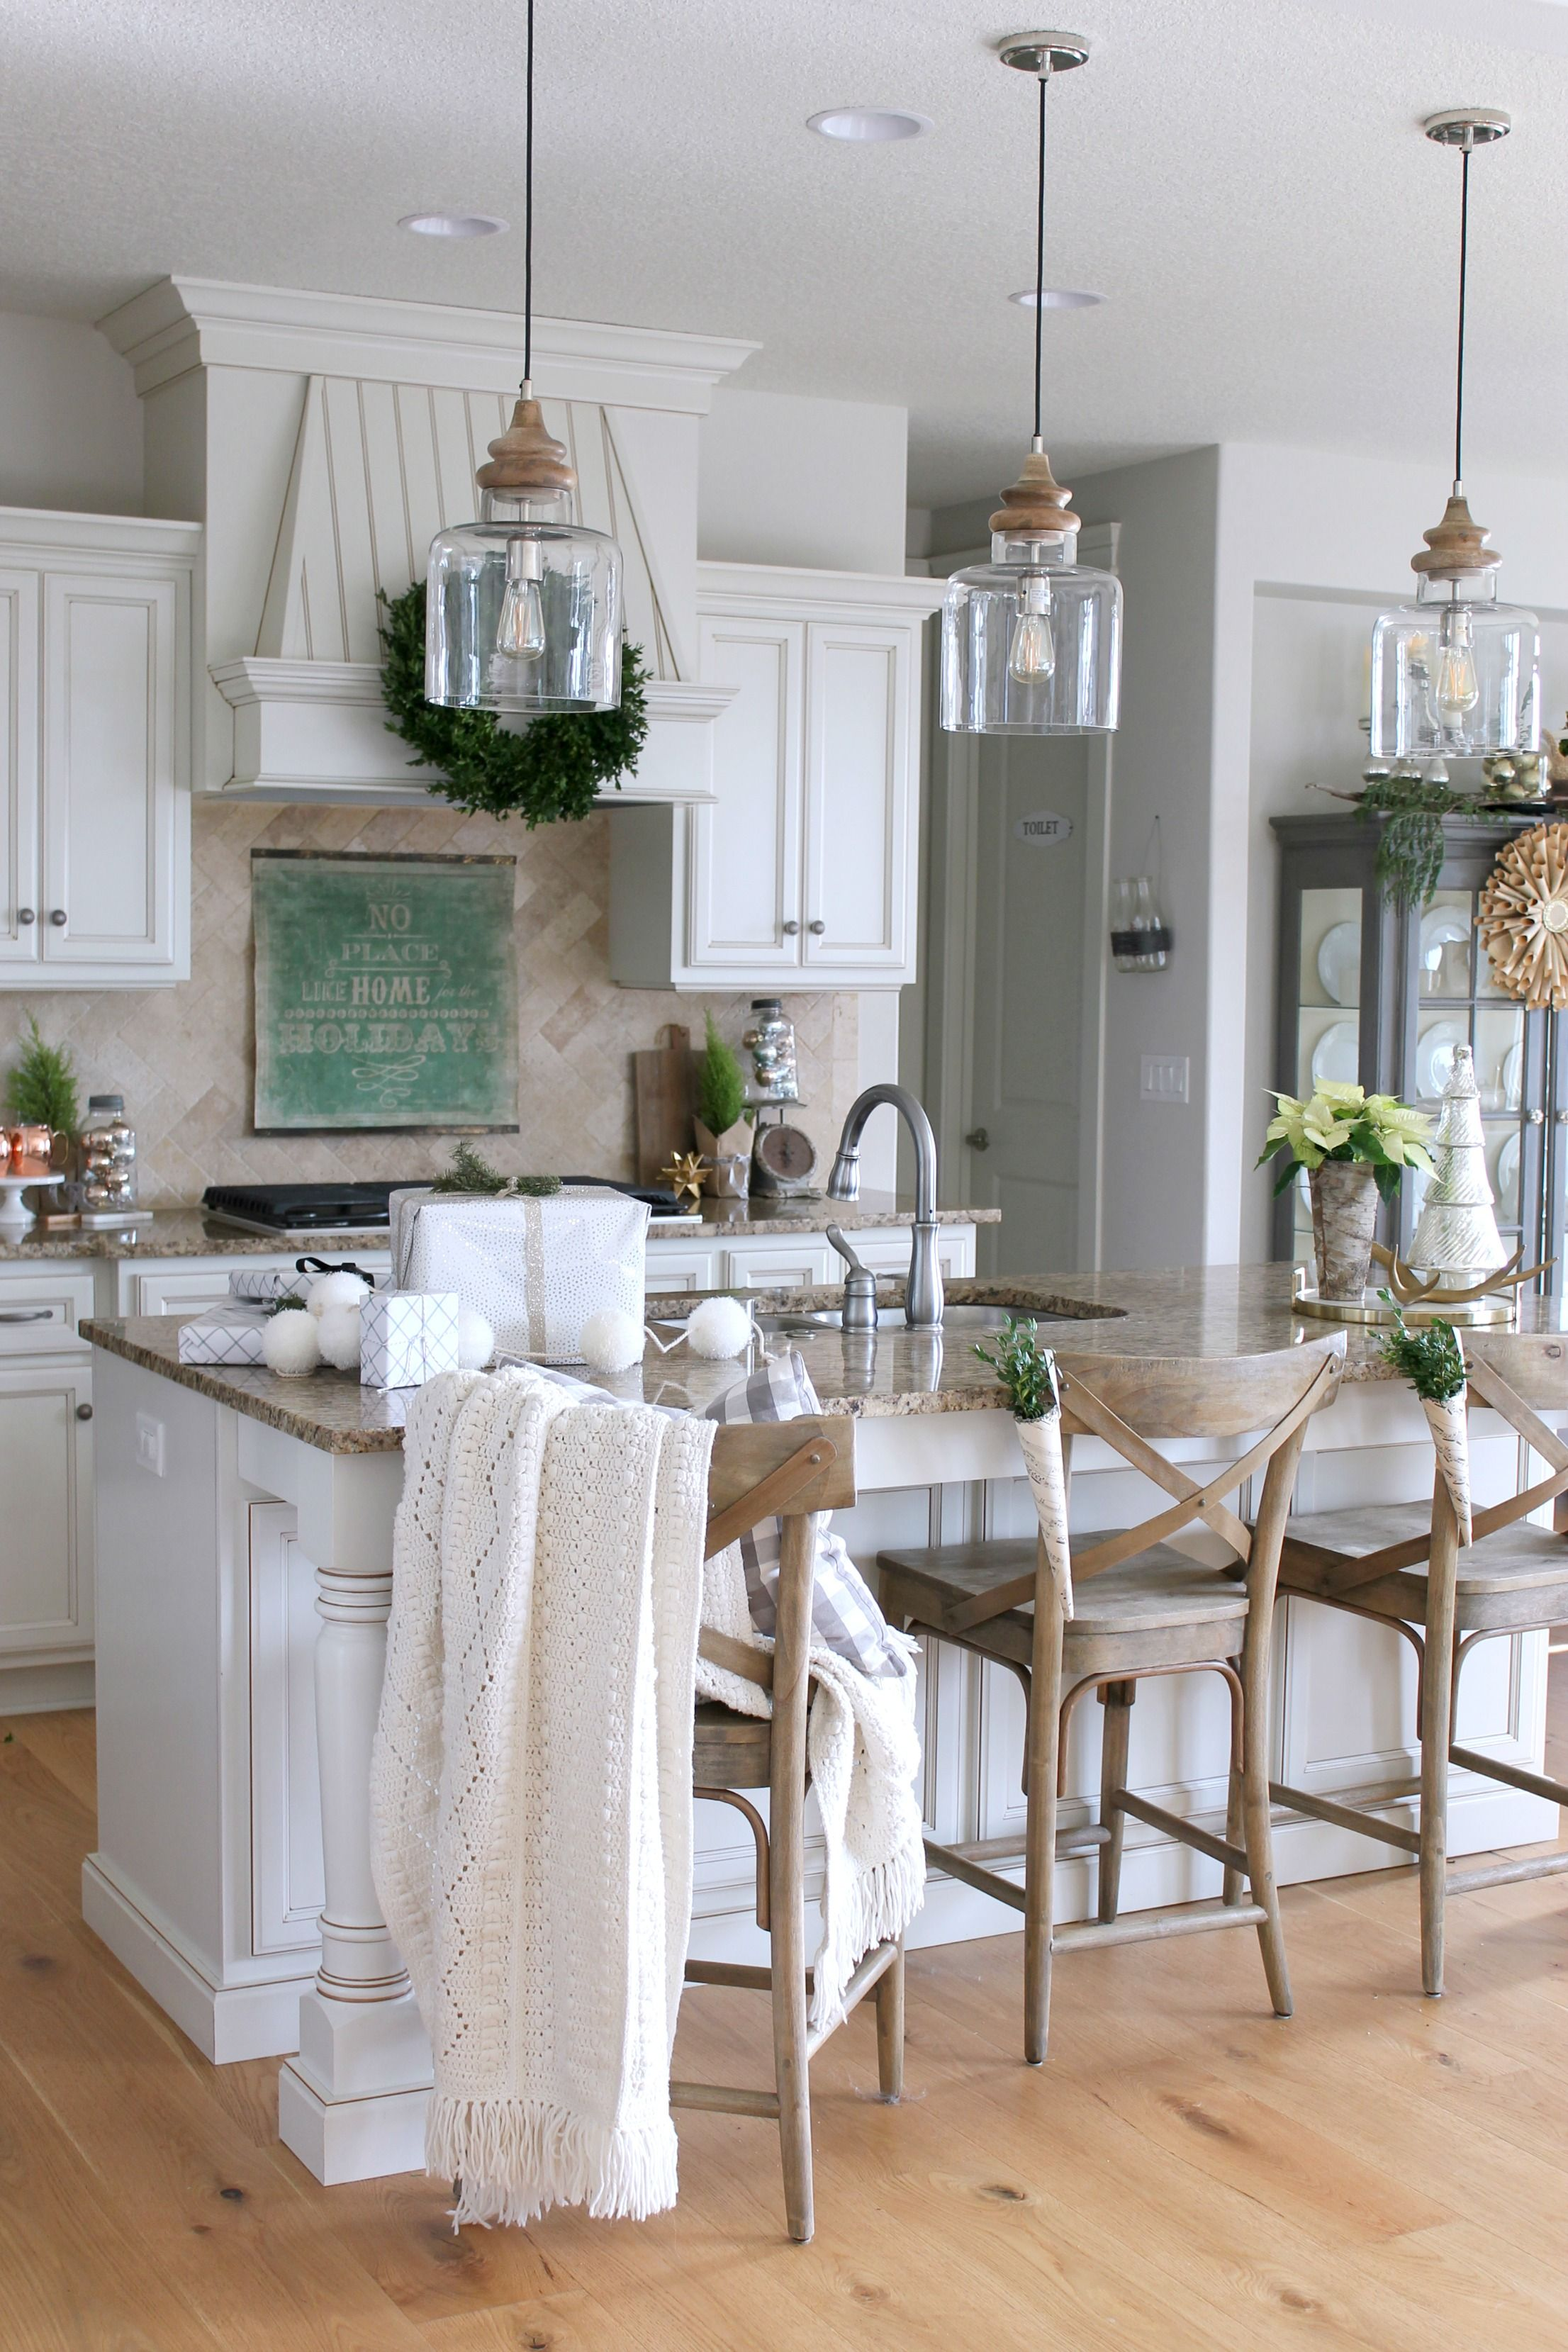 New Farmhouse Style Island Pendant Lights | Farmhouse style ...